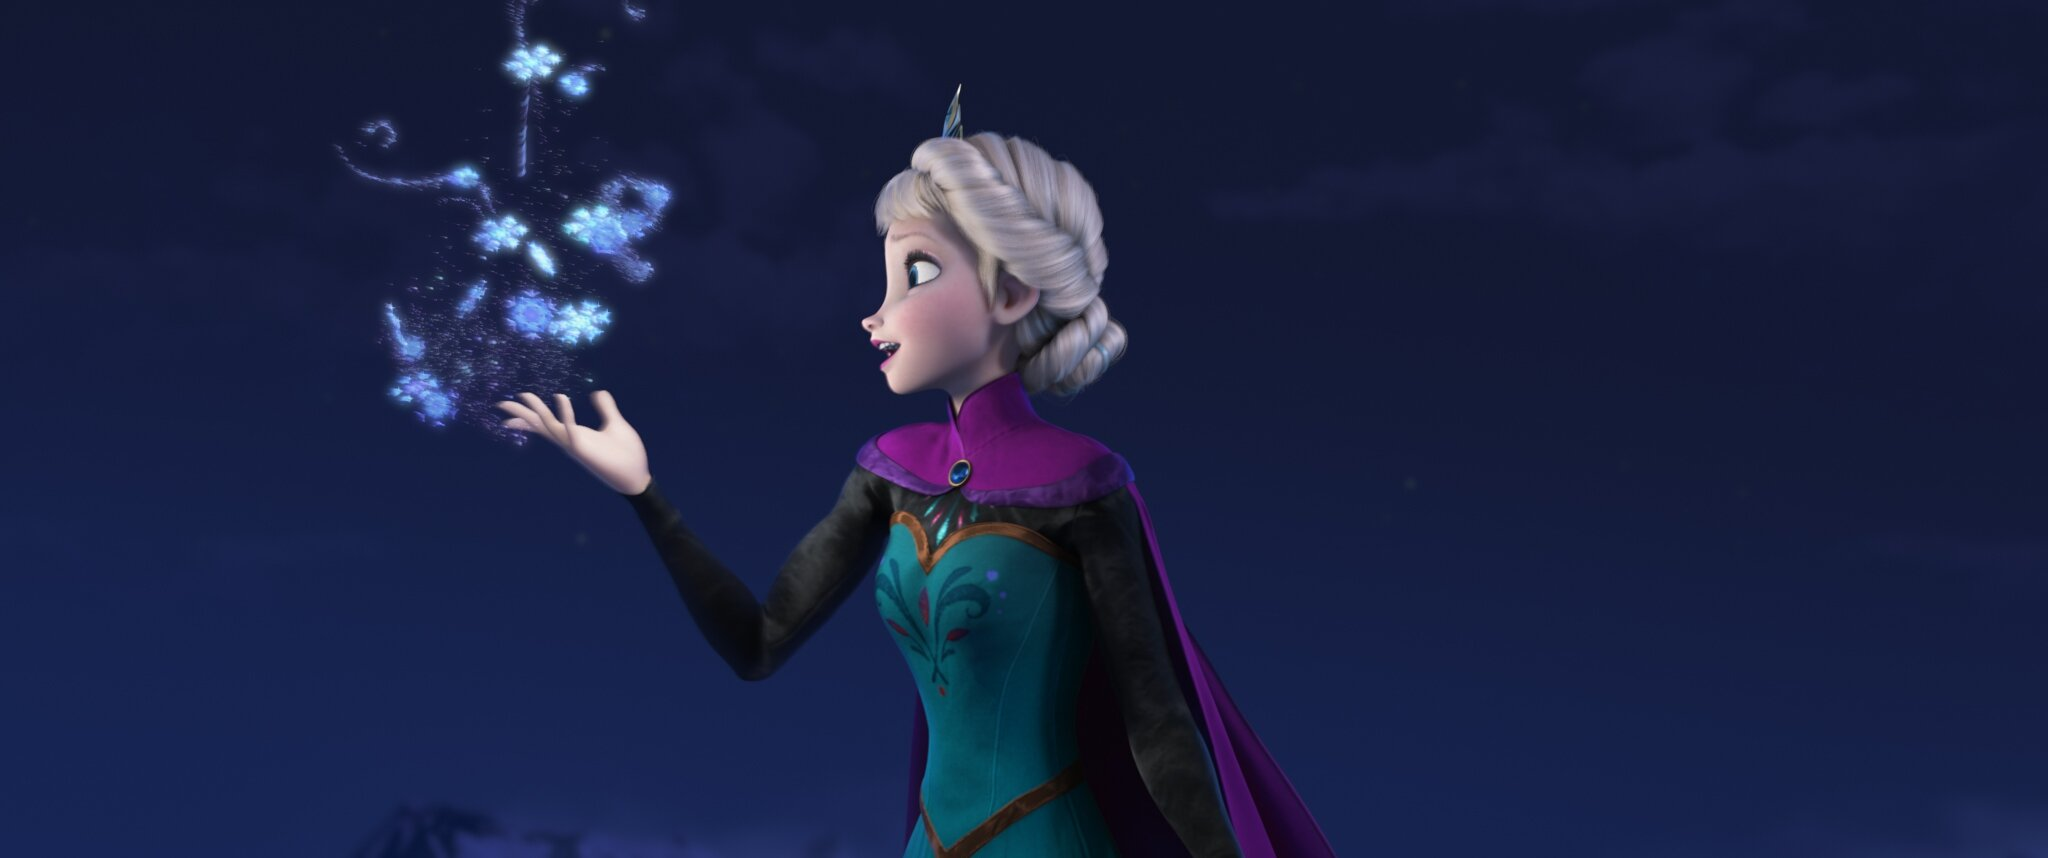 Critique la reine des neiges the art of disney - Raiponce reine des neiges ...